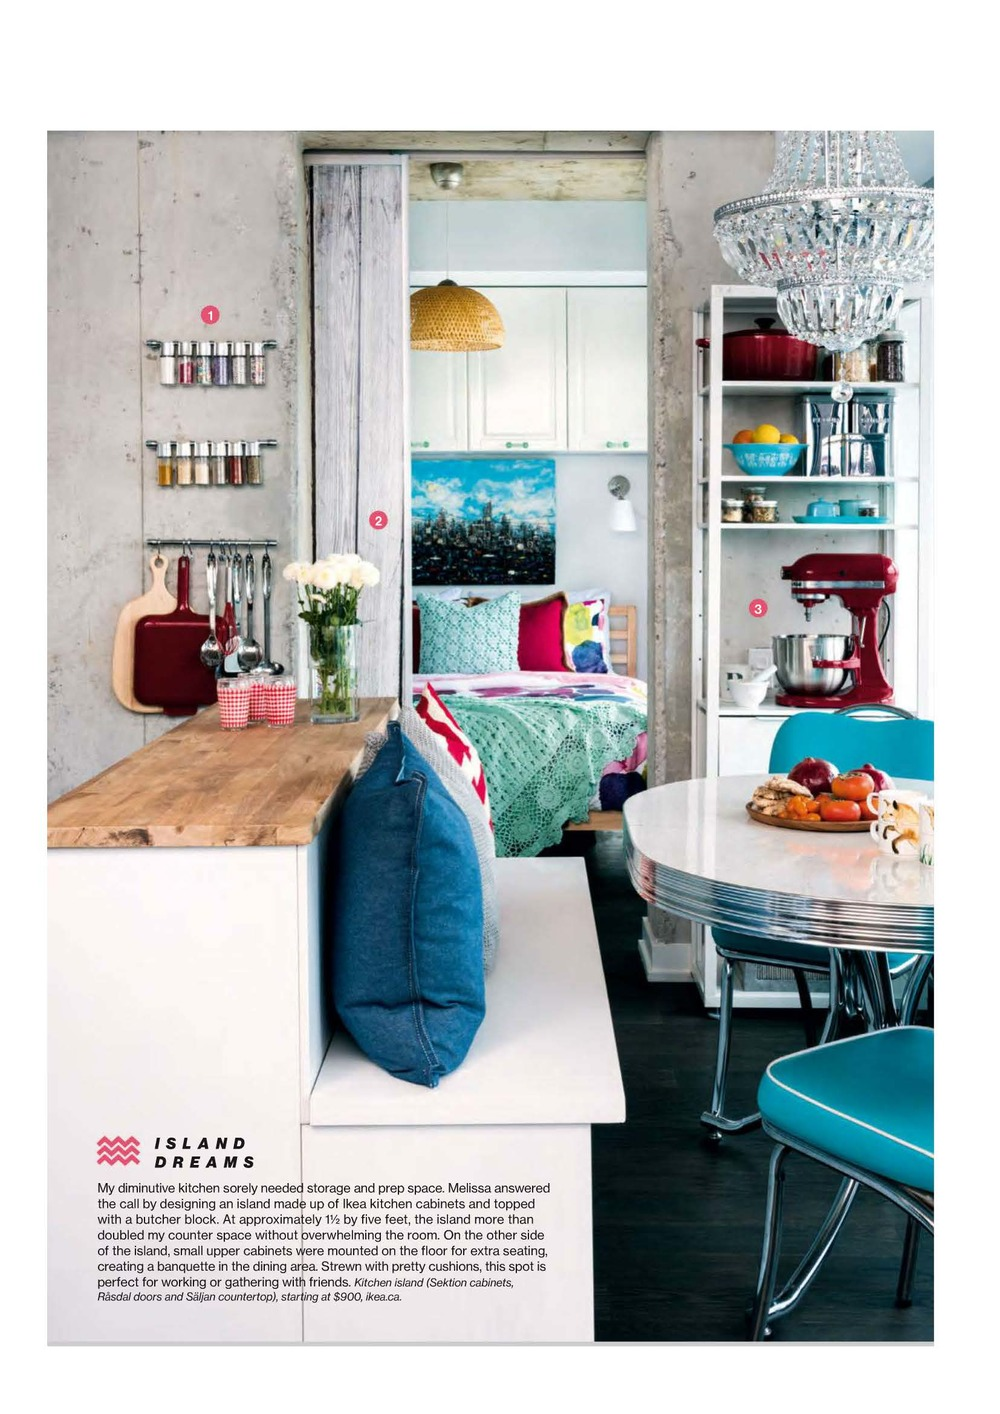 Canadian Living | May 2016 | Express 3 | Zinio Digital Magazines 3_Page_1.jpg